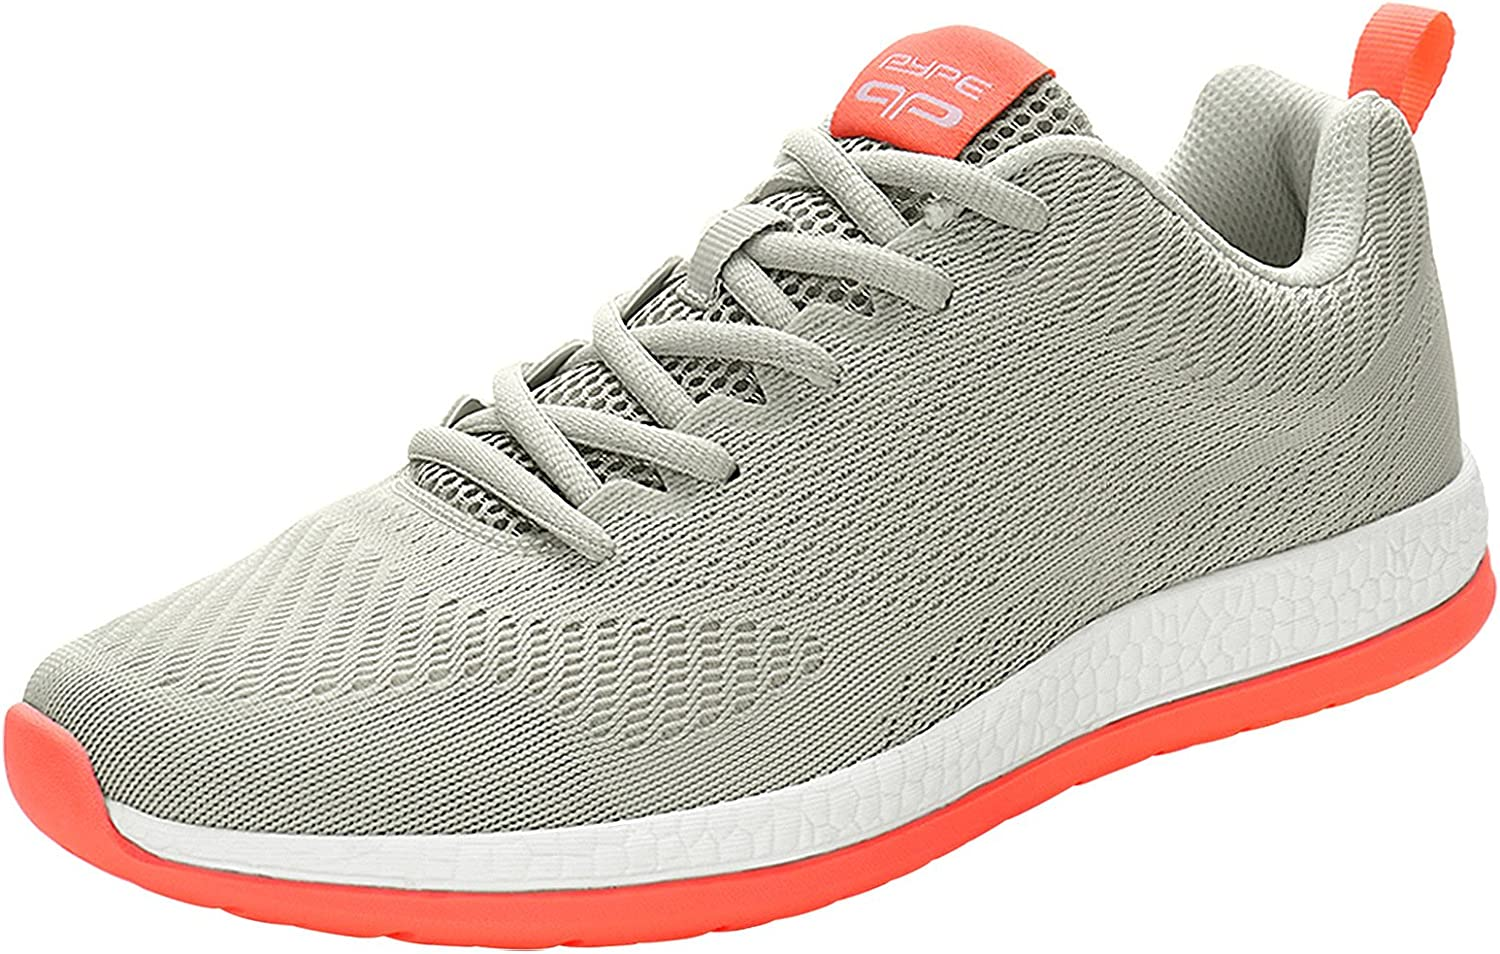 PYPE Women's Breathable Running Shoe